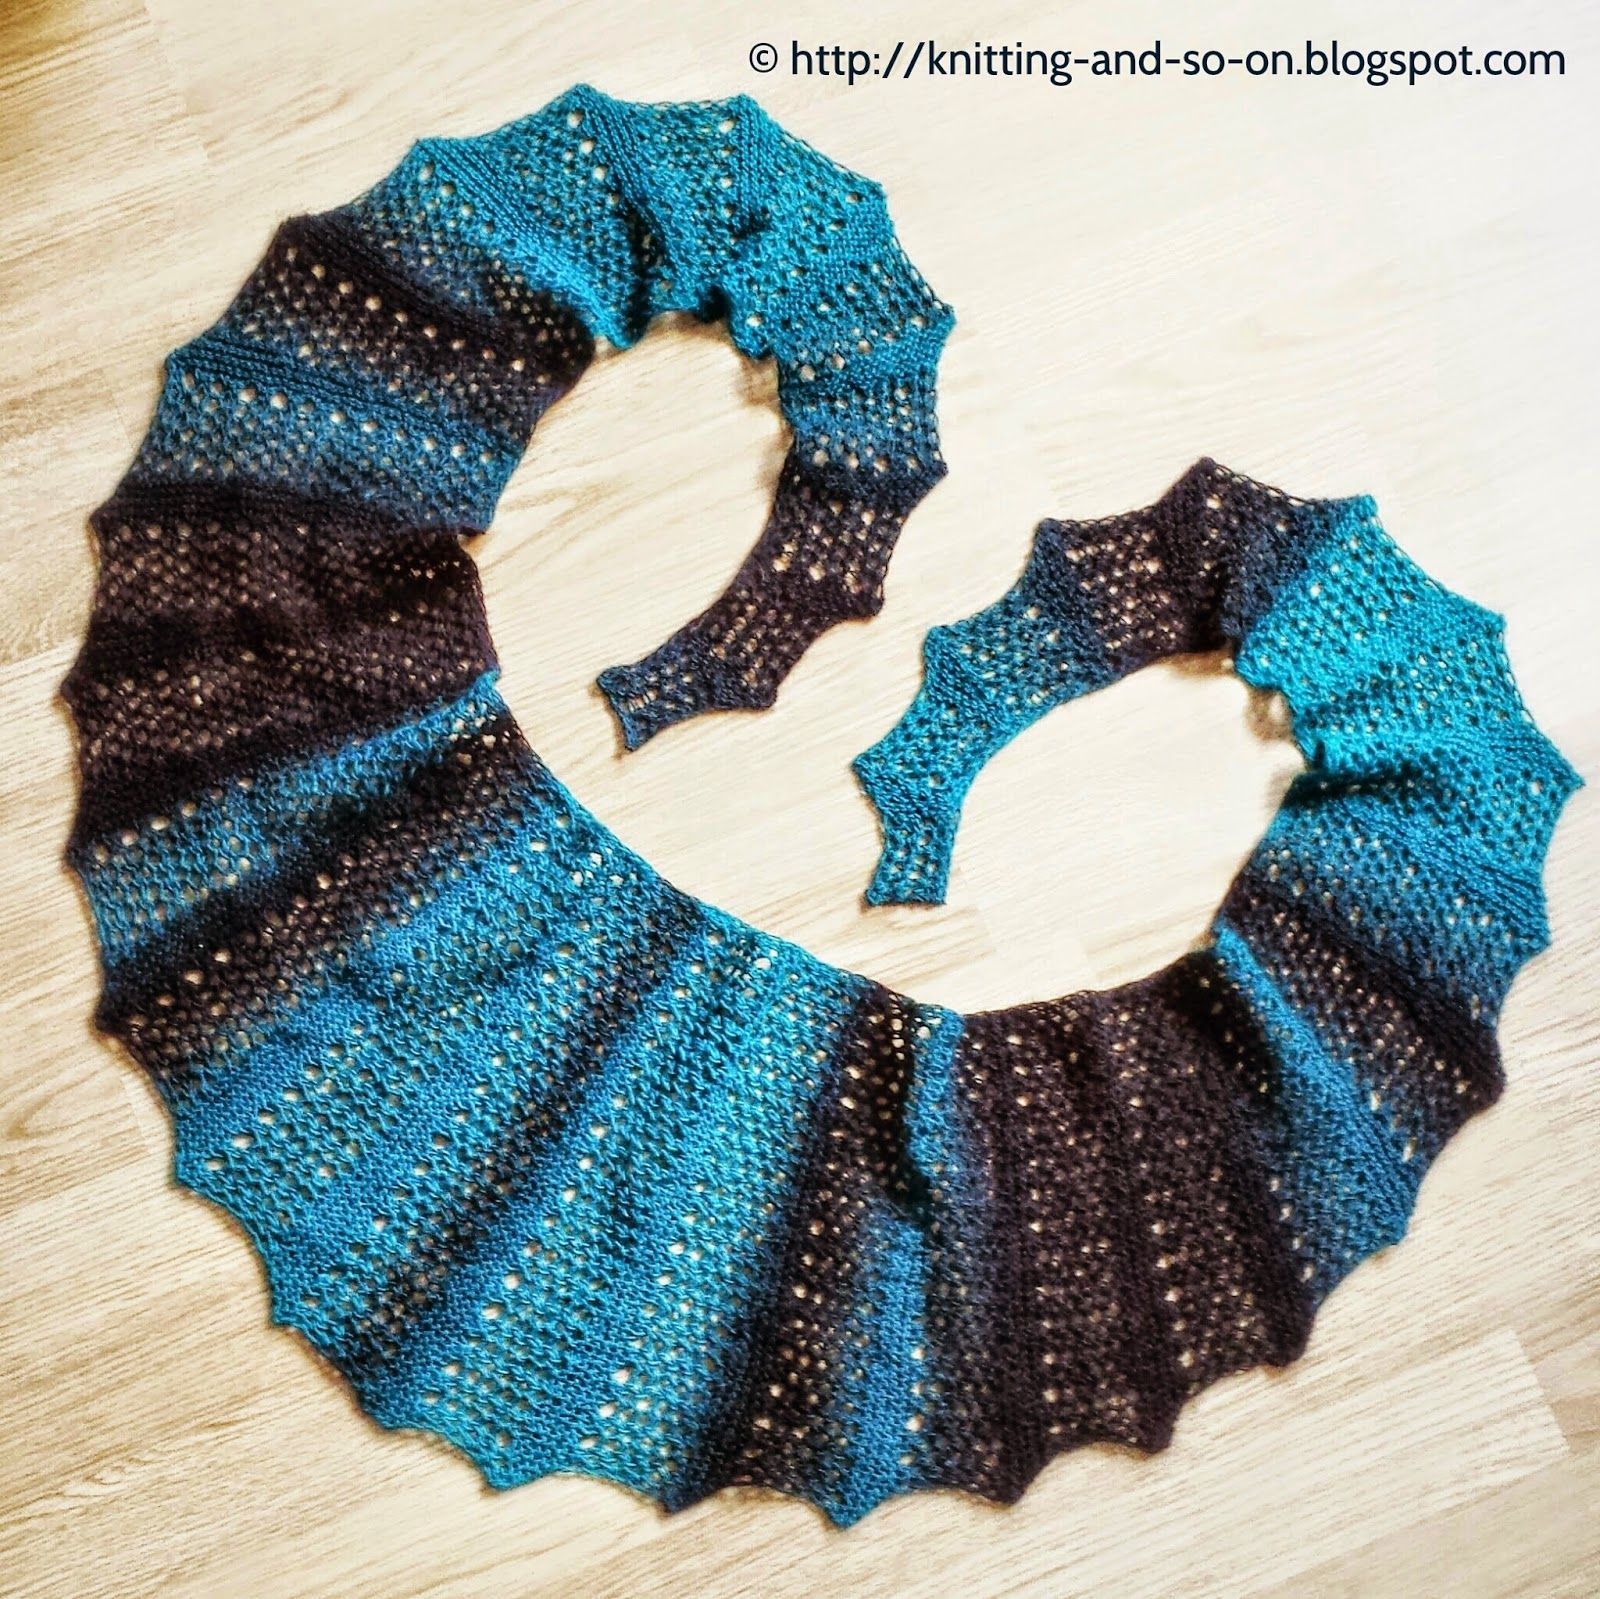 Free knitting pattern seifenblasen lace scarf stricken free knitting pattern seifenblasen lace scarf bankloansurffo Image collections